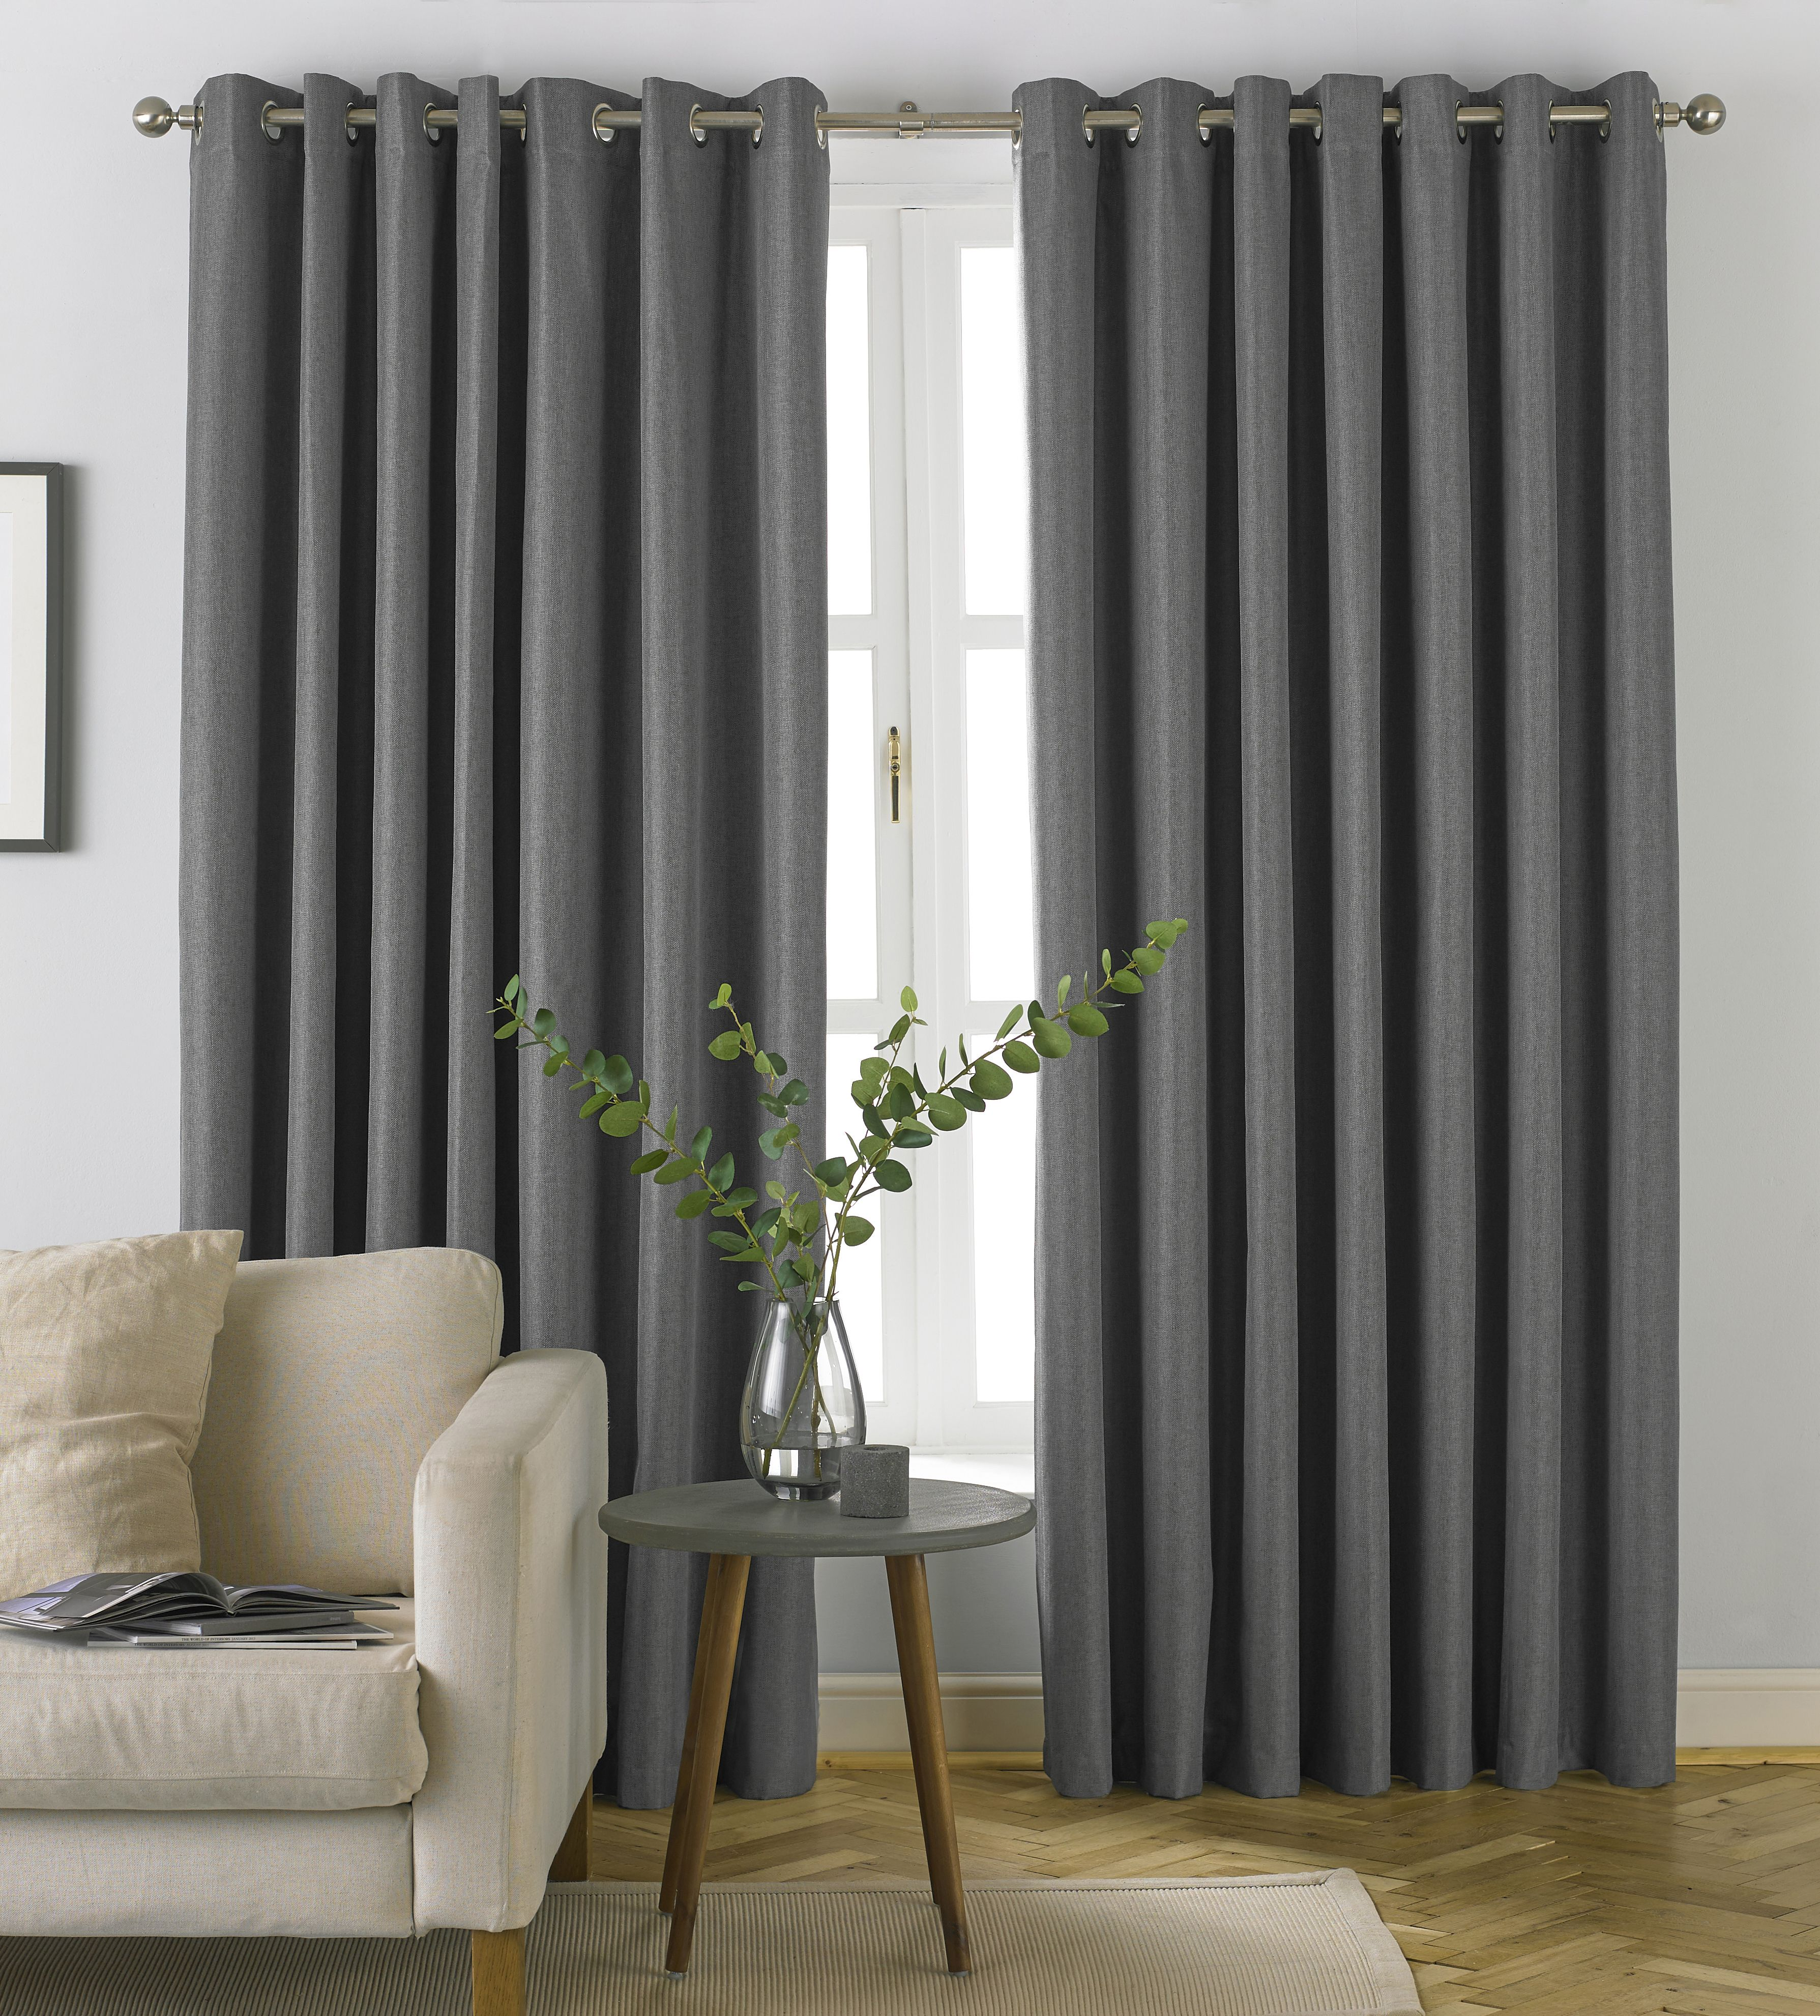 Moon Herringbone Blackout Eyelet Curtains in Grey